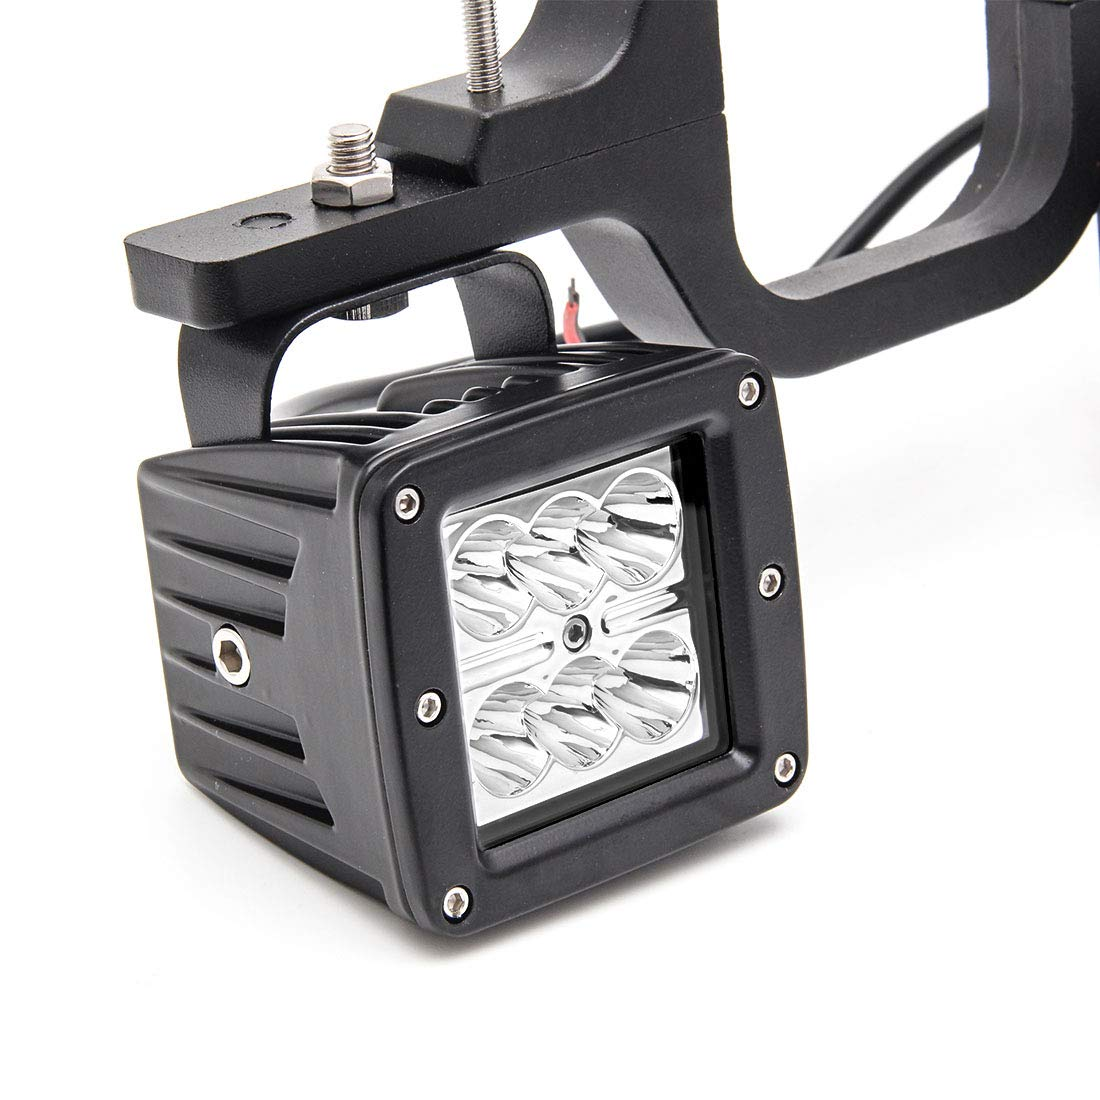 Autokun 2.5 inch Universal Car Tow Hitch Mounting Bracket with 16w LED Backup Reverse Light for Toyota FJ Cruiser Offroad SUV Truck Trailer